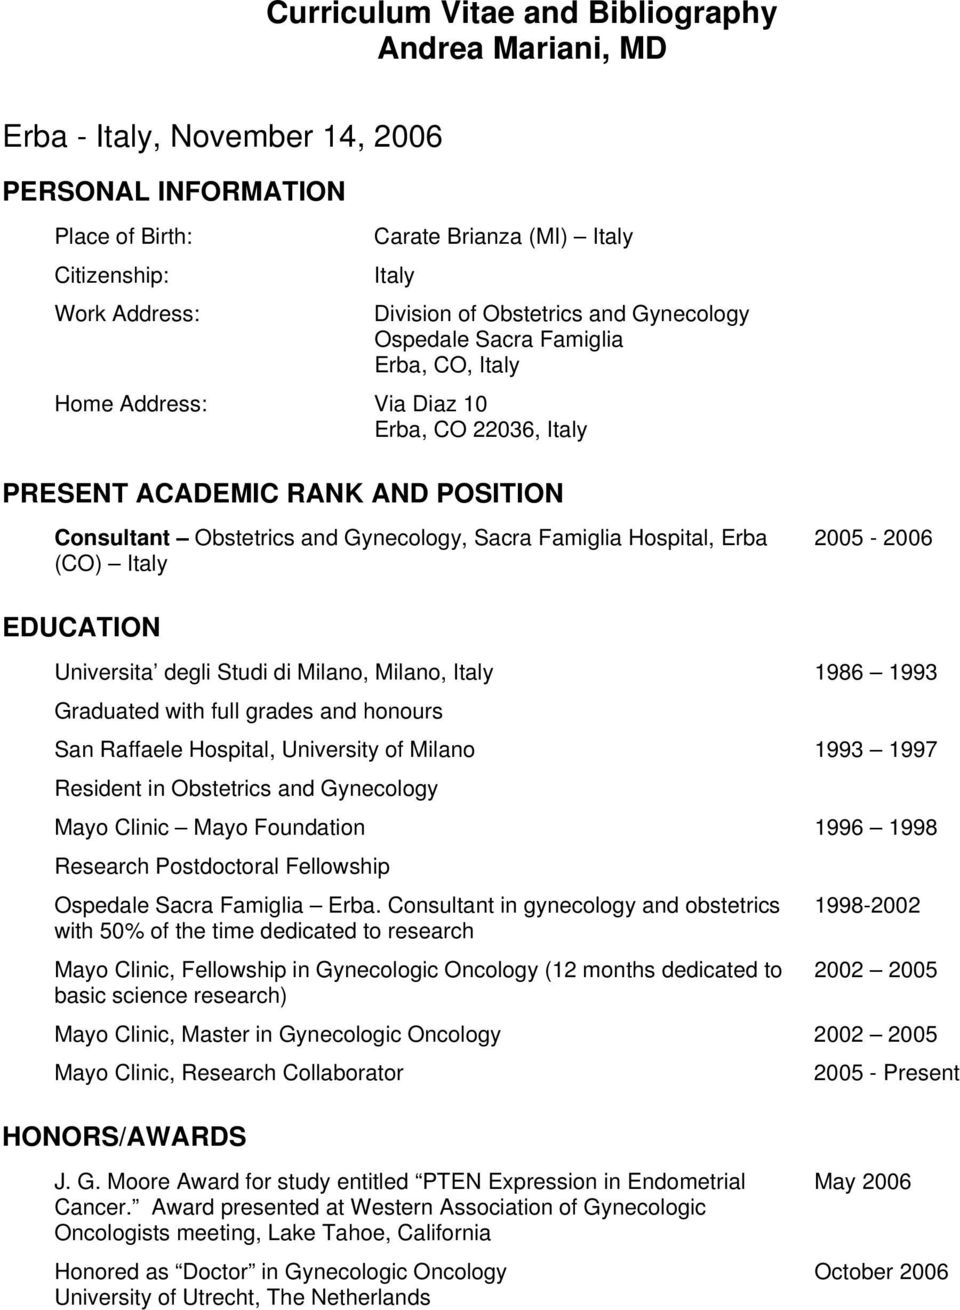 Curriculum Vitae and Bibliography Andrea Mariani, MD - PDF